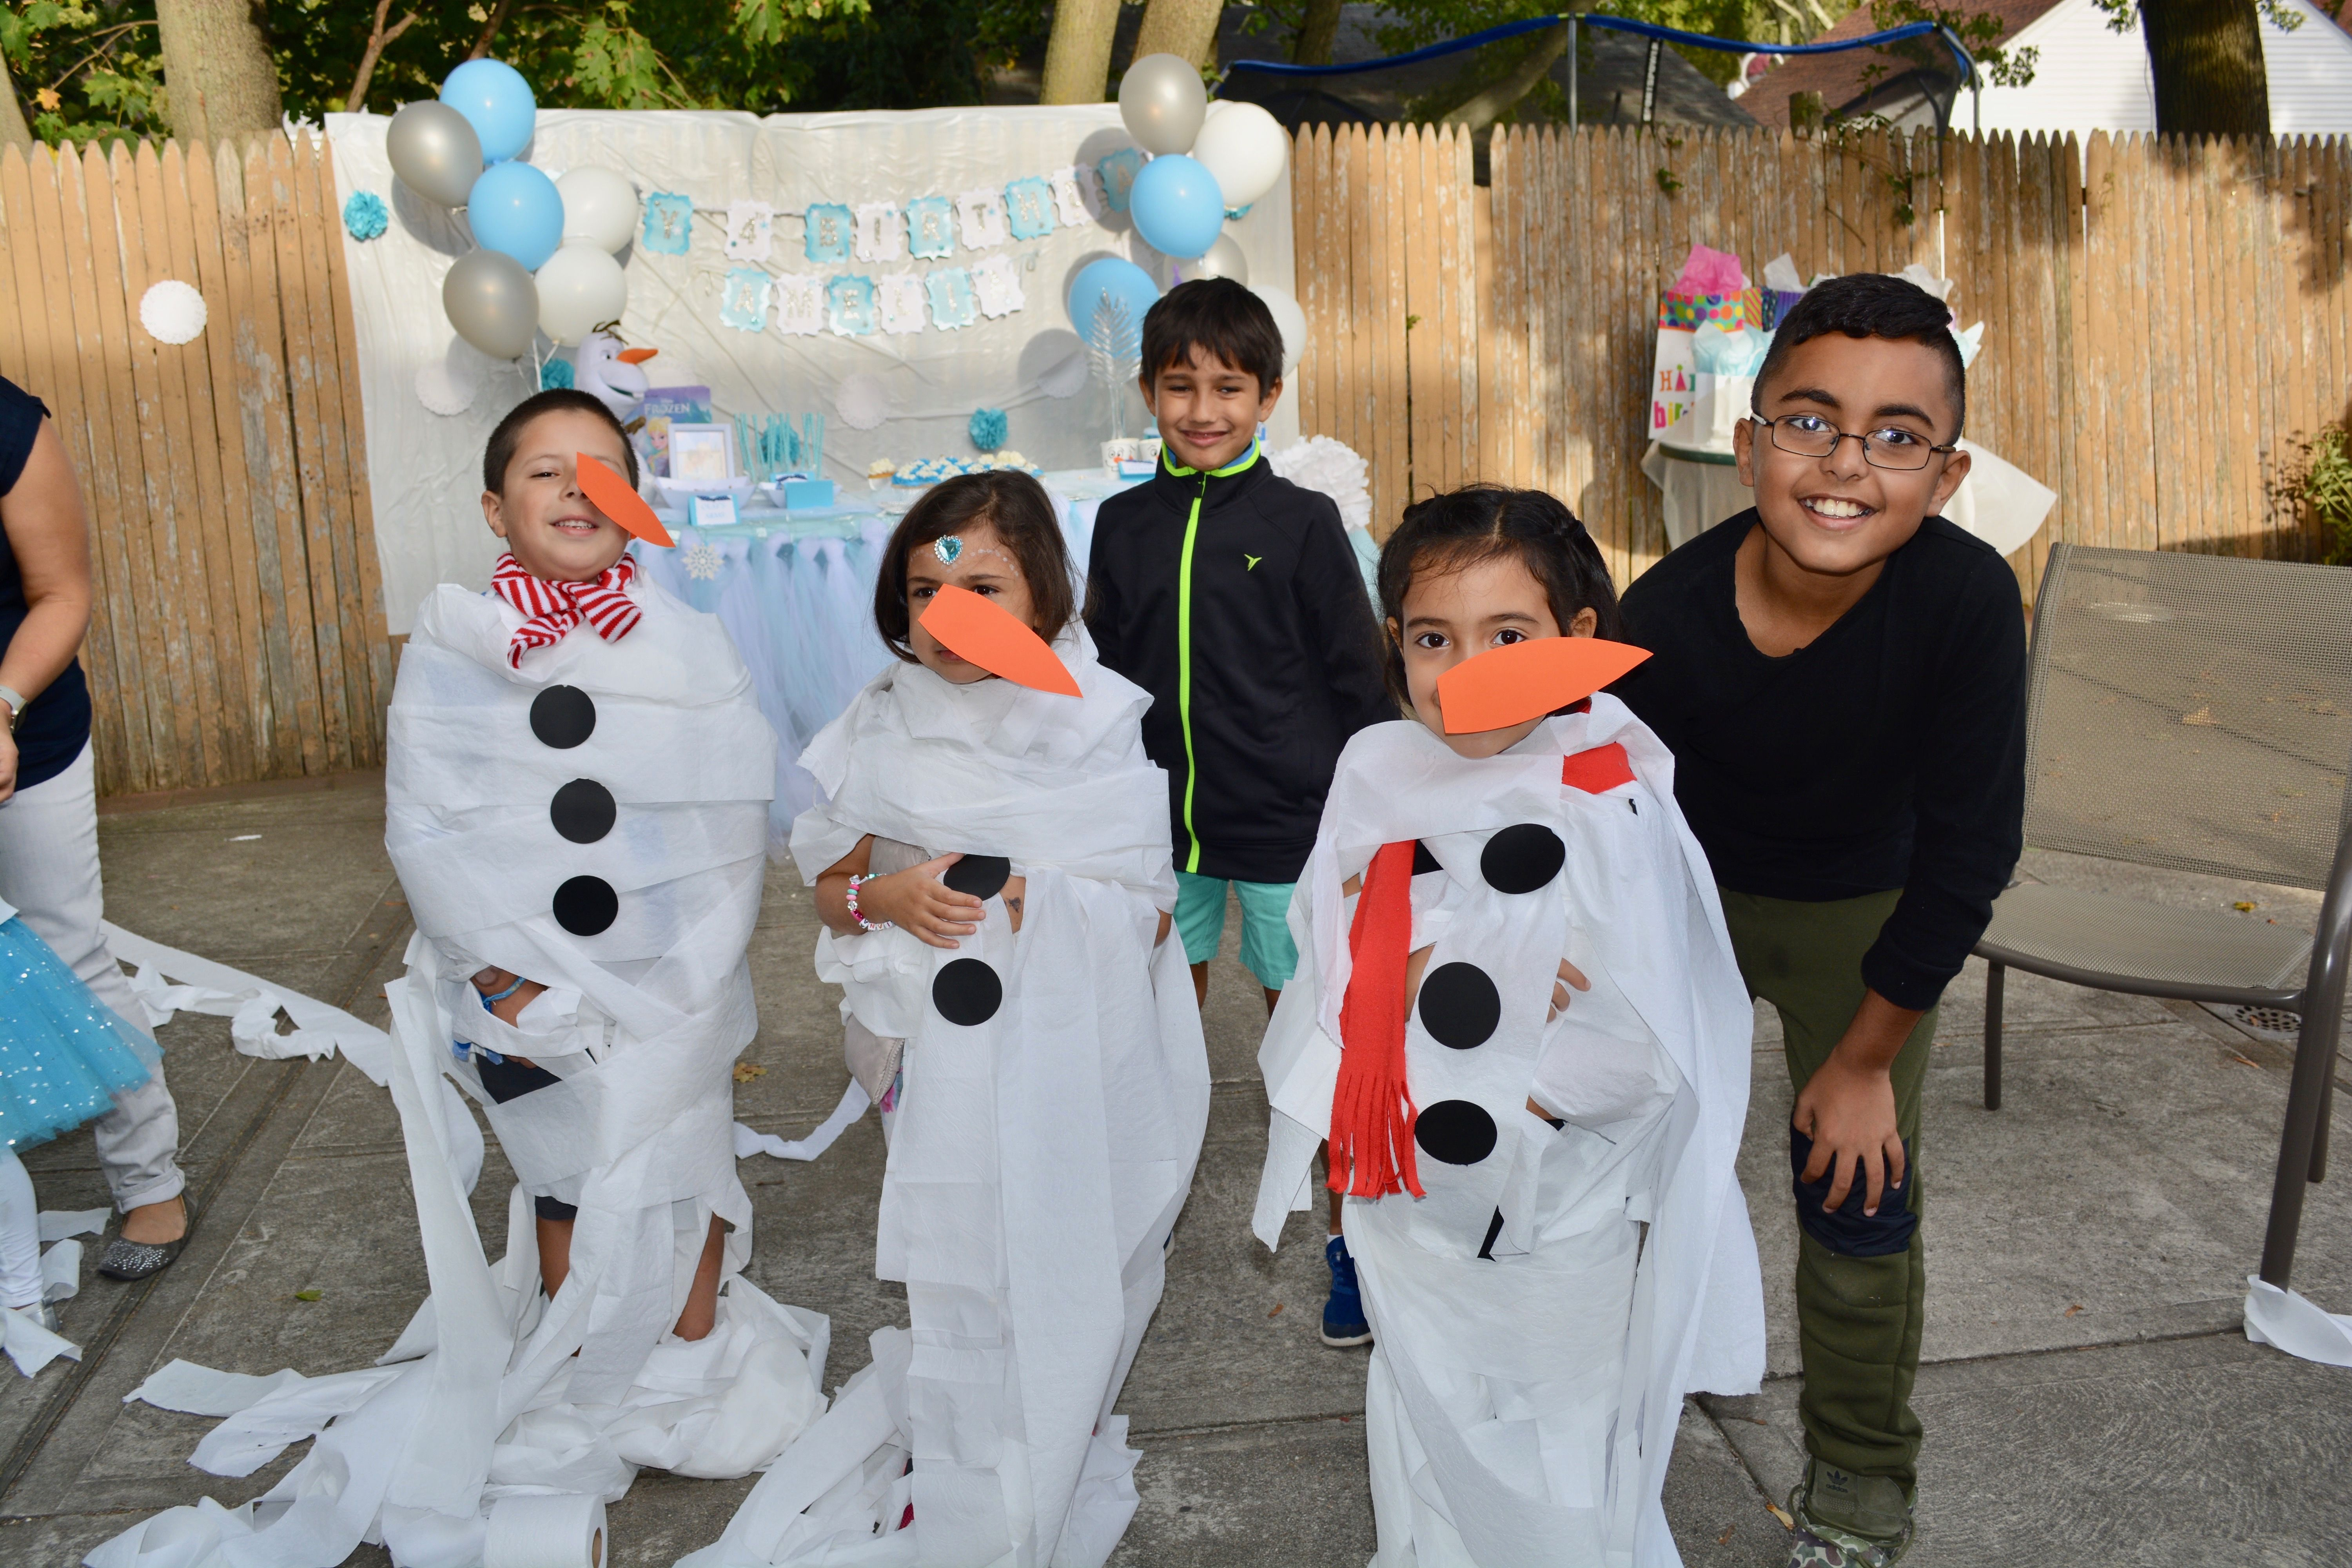 How to Prep the Ultimate Frozen Themed Birthday Party - Prep and Shine #frozenbirthdayparty